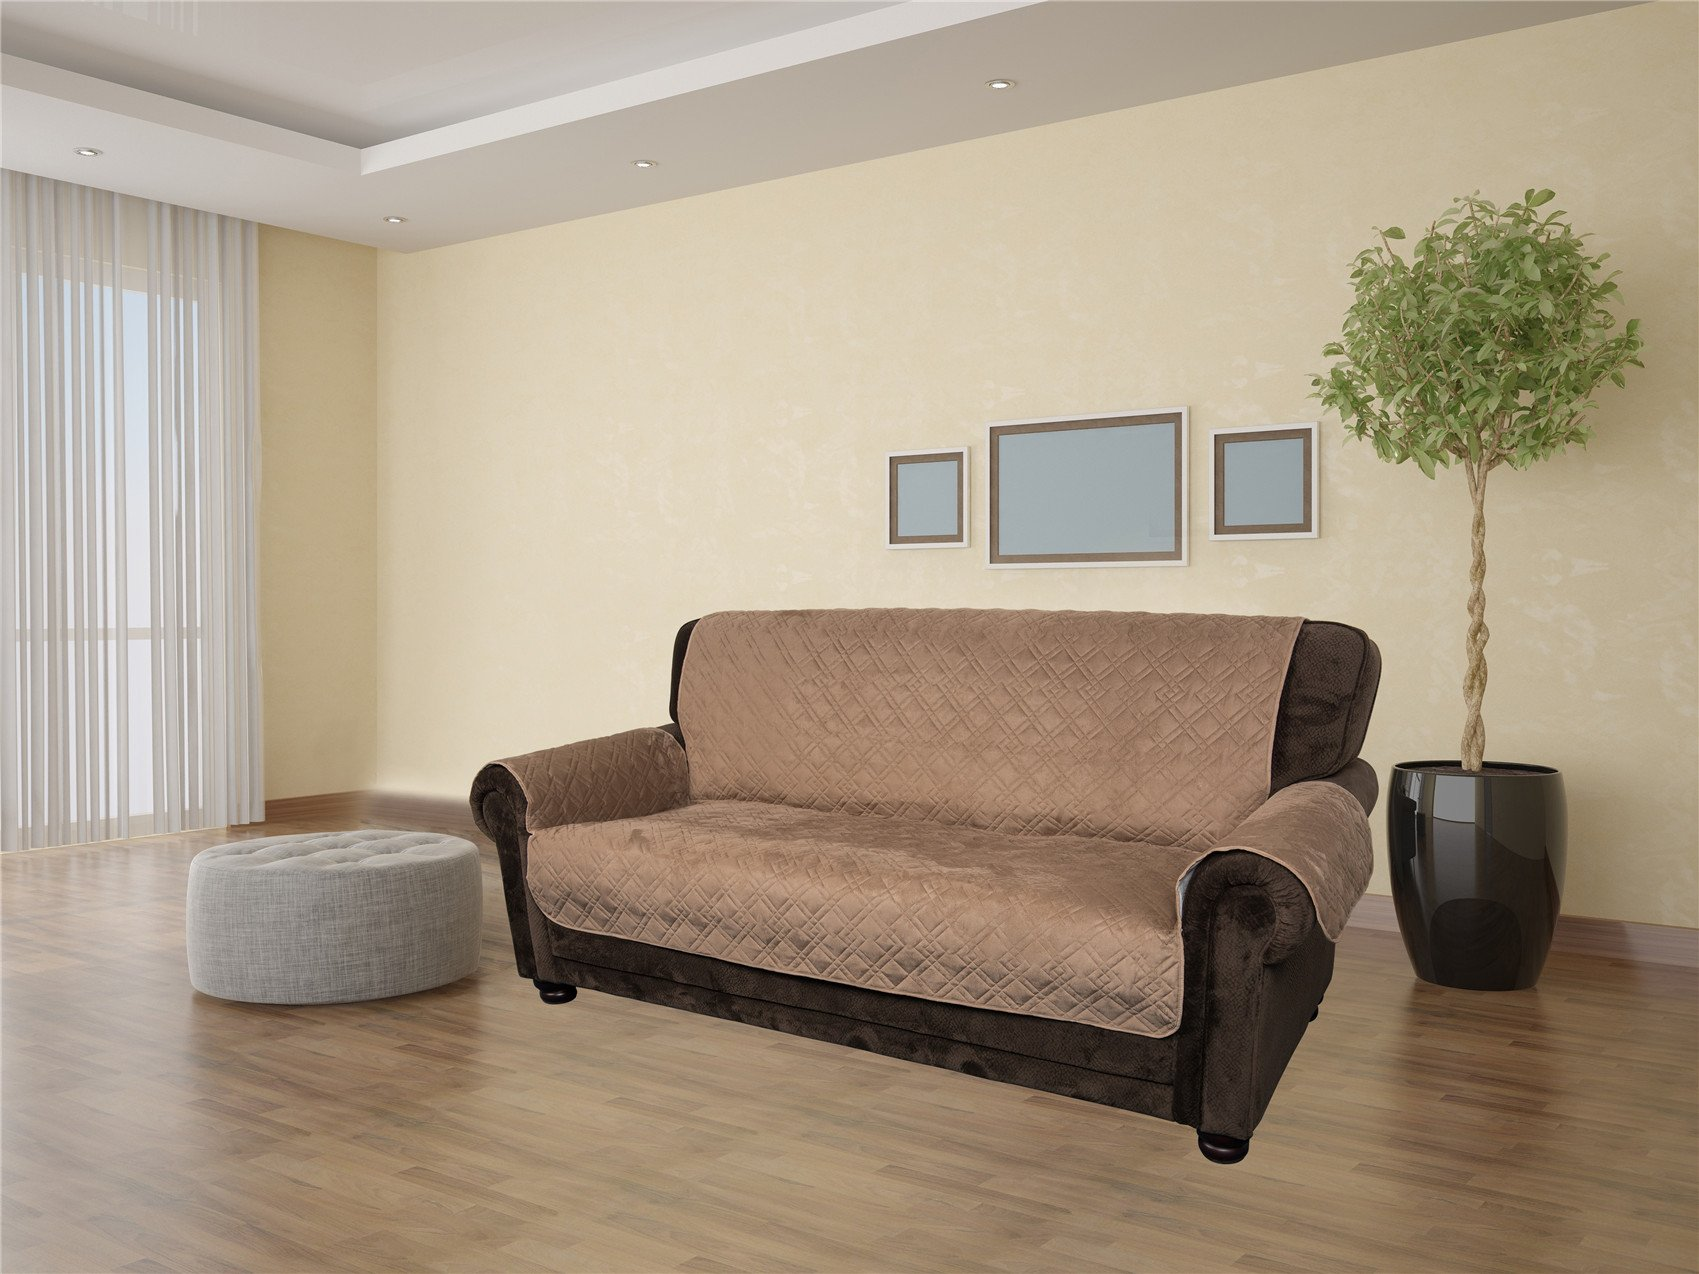 Cheap Microsuede Sofa Cover find Microsuede Sofa Cover deals on